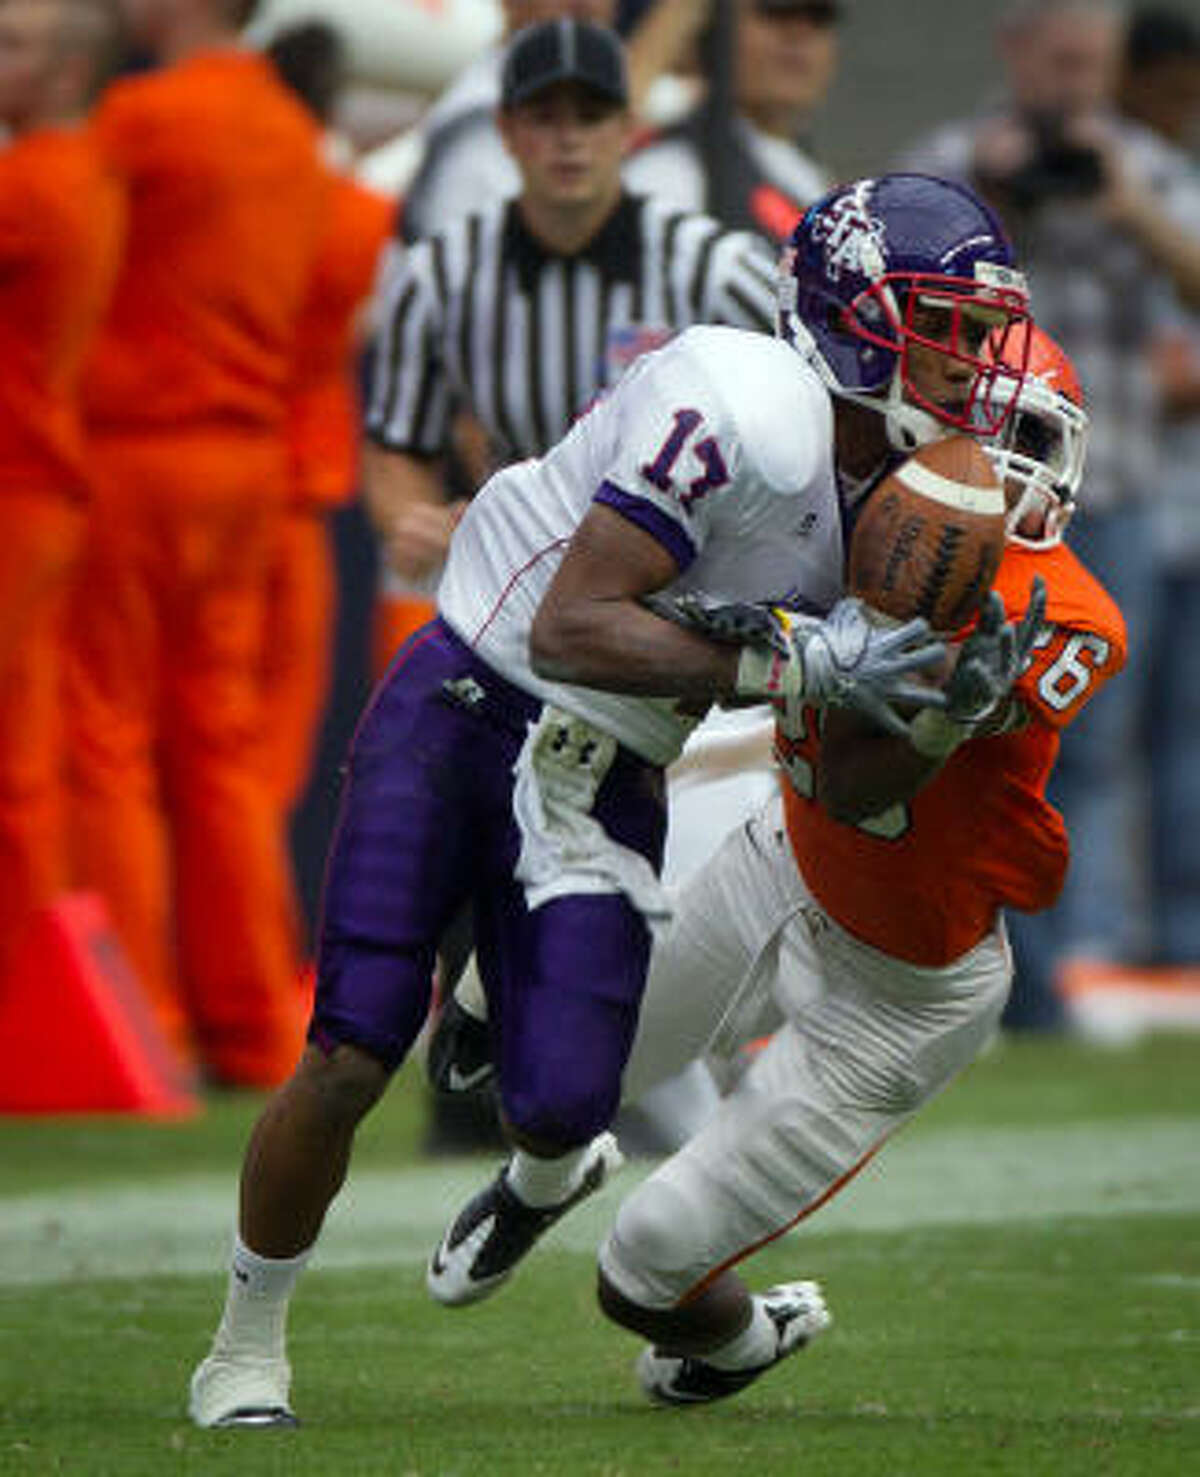 Stephen F. Austin wide receiver Gralyn Crawford makes a catch as Sam Houston State cornerback C J Willis defends during the first half.